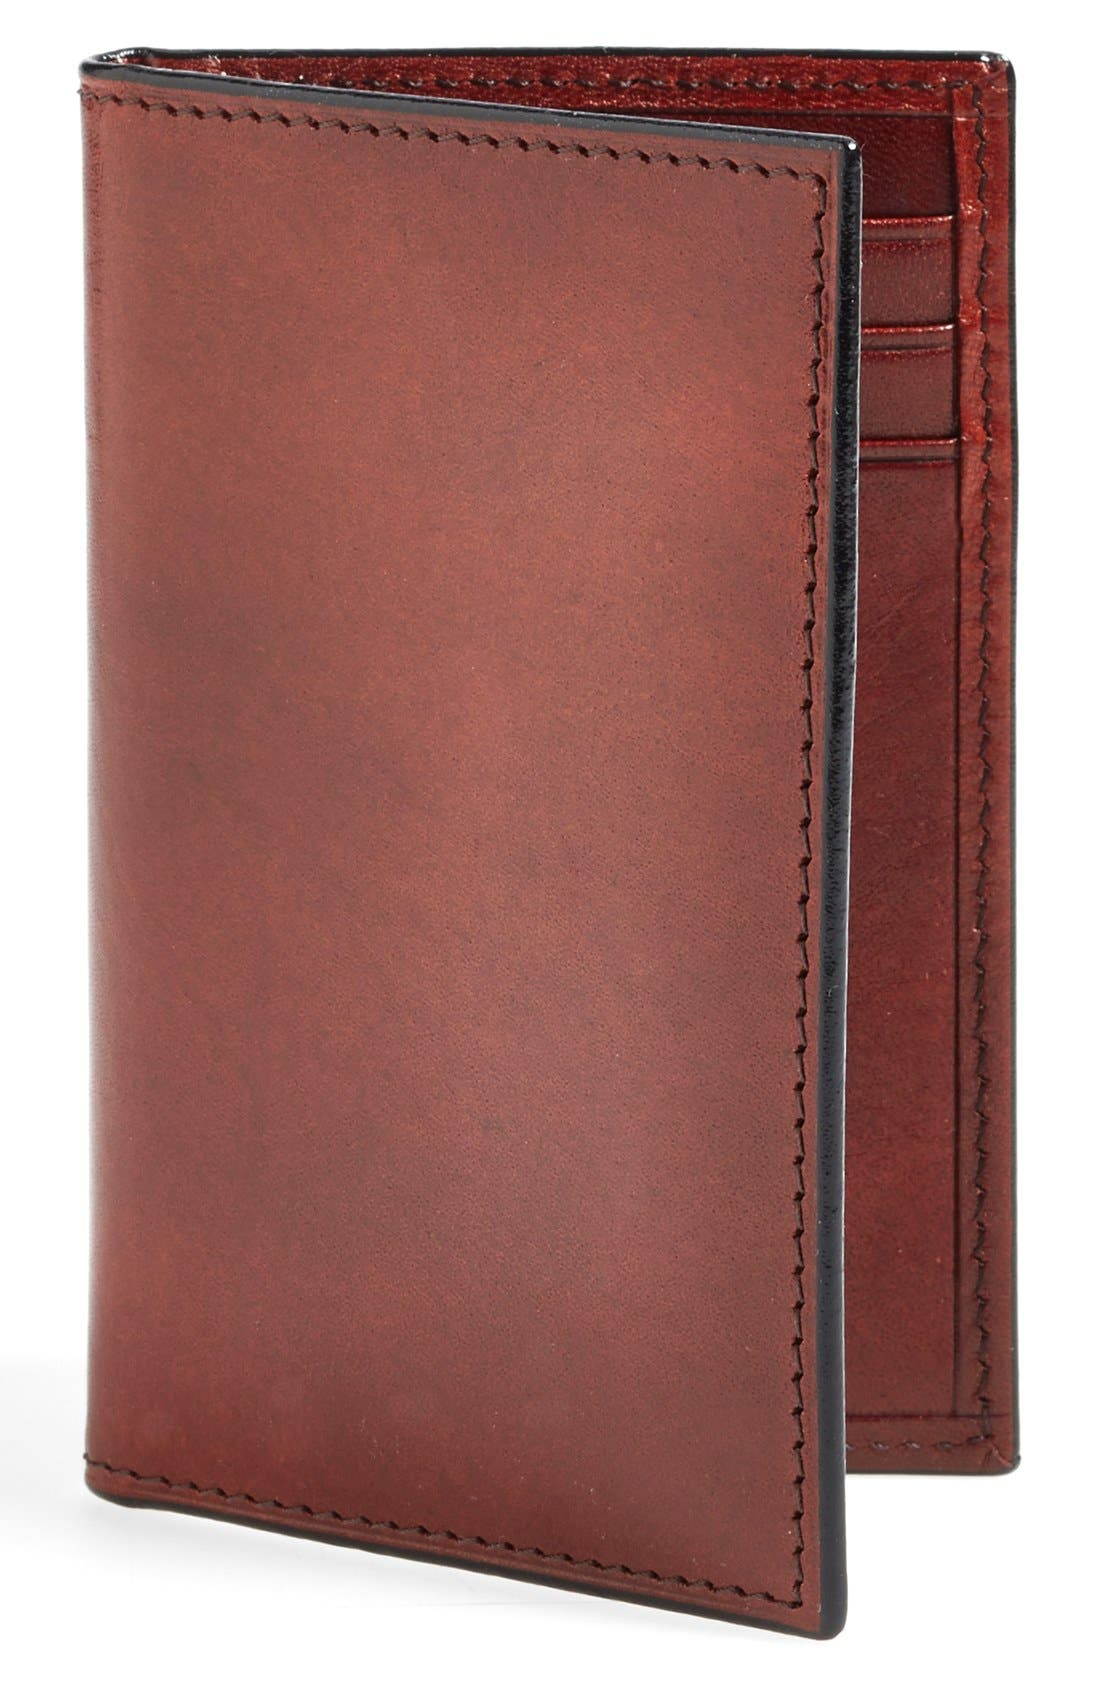 BOSCA 'Old Leather' Card Case, Main, color, DARK BROWN